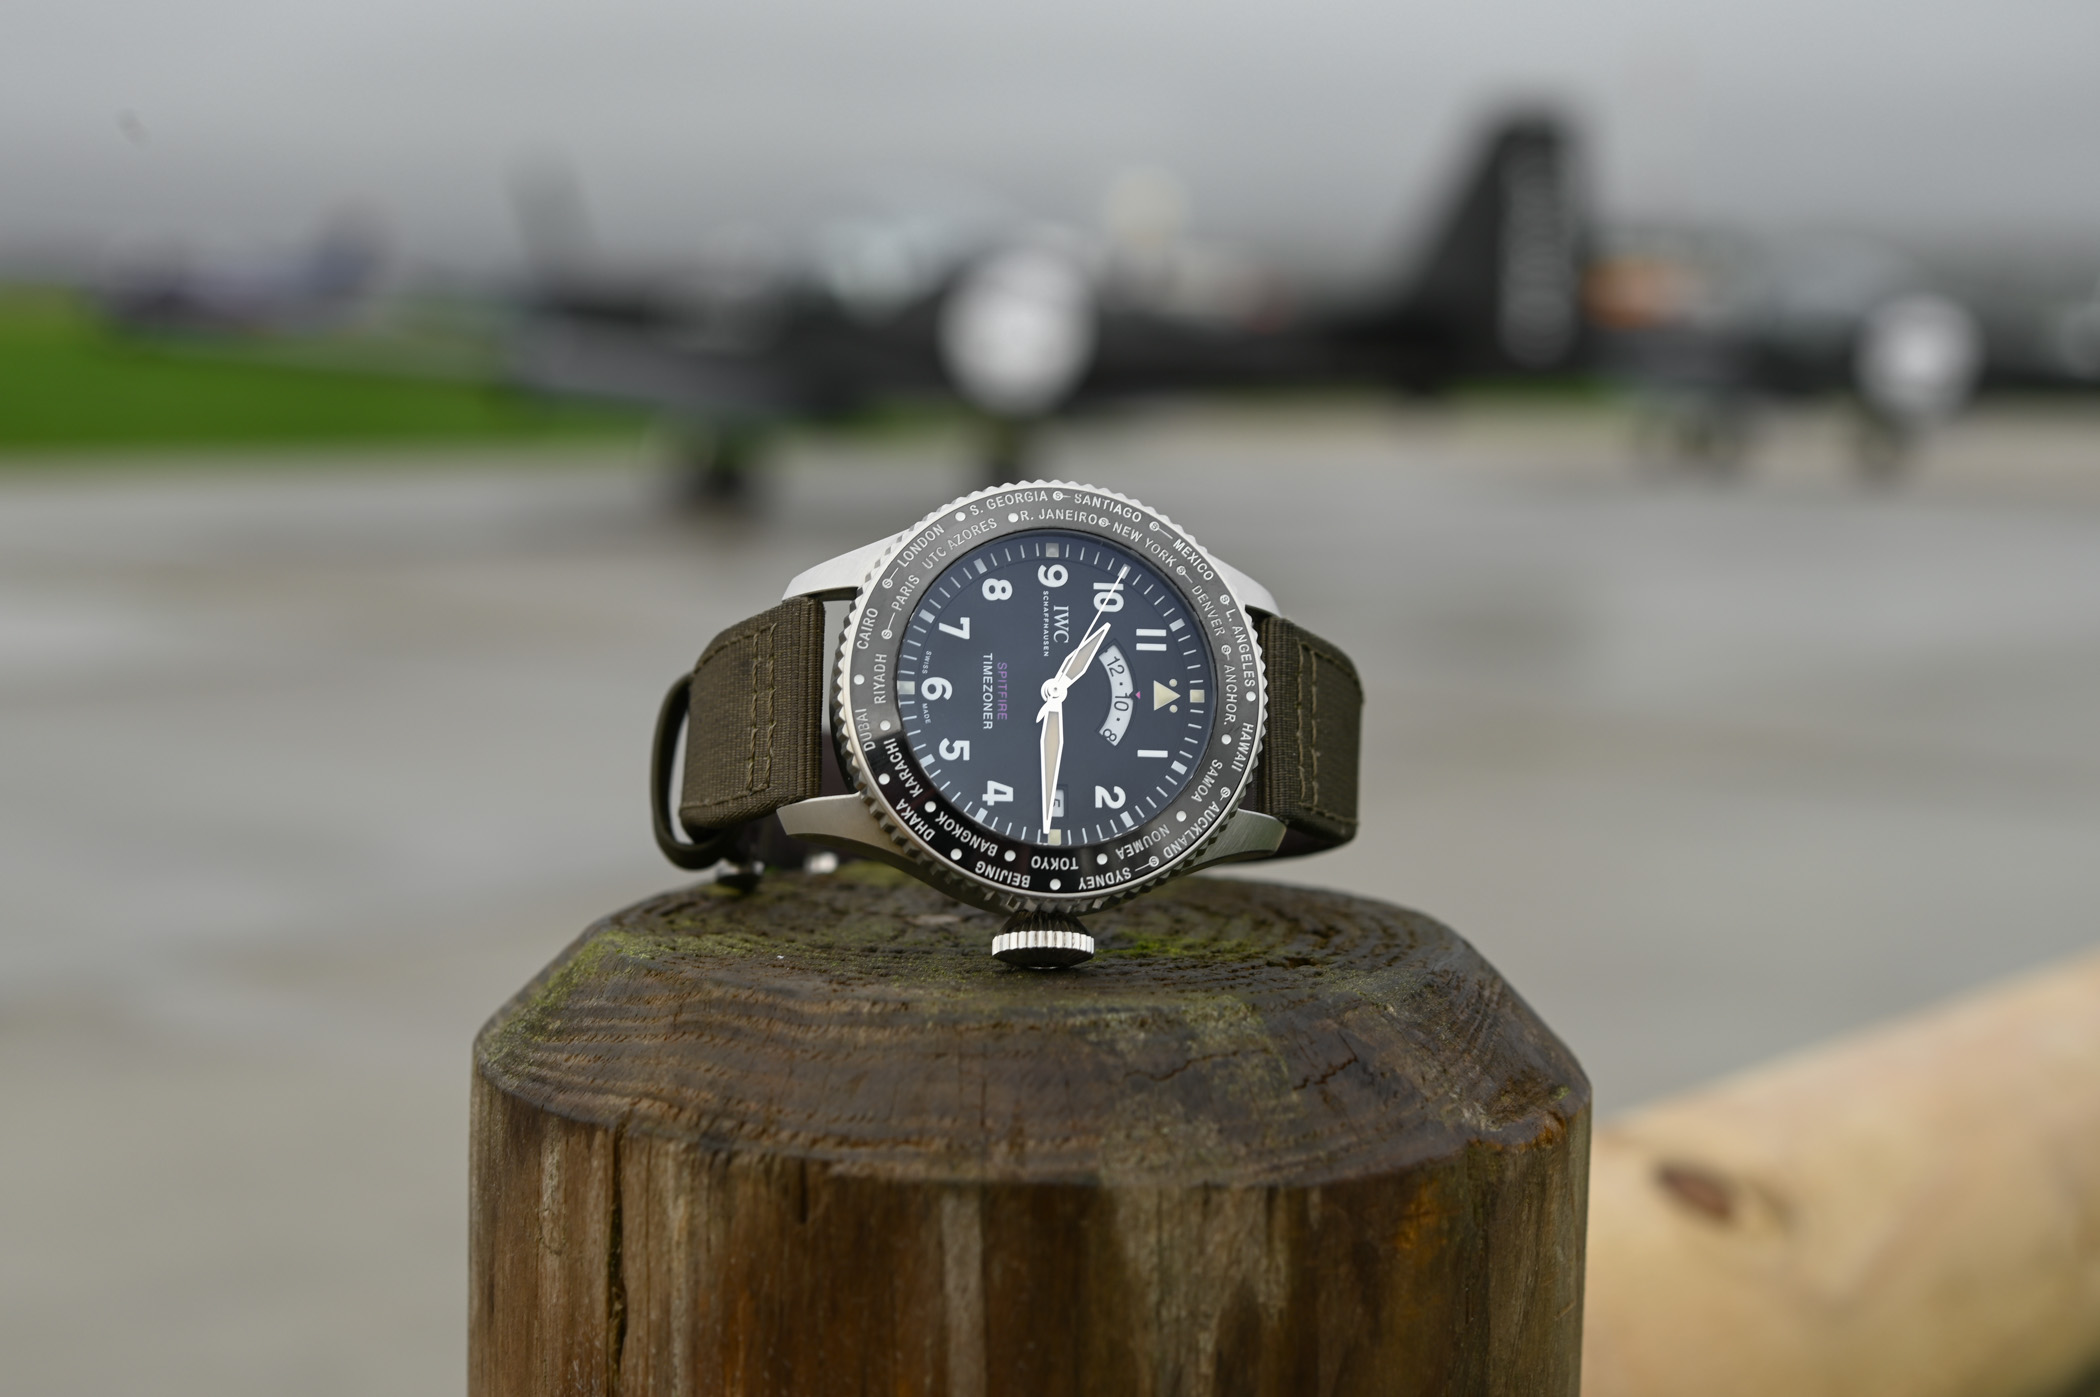 IWC-Pilots-Watch-Timezoner-Spitfire-Edition-The-Longest-Flight-IW395501-SIHH-2019-11.jpg